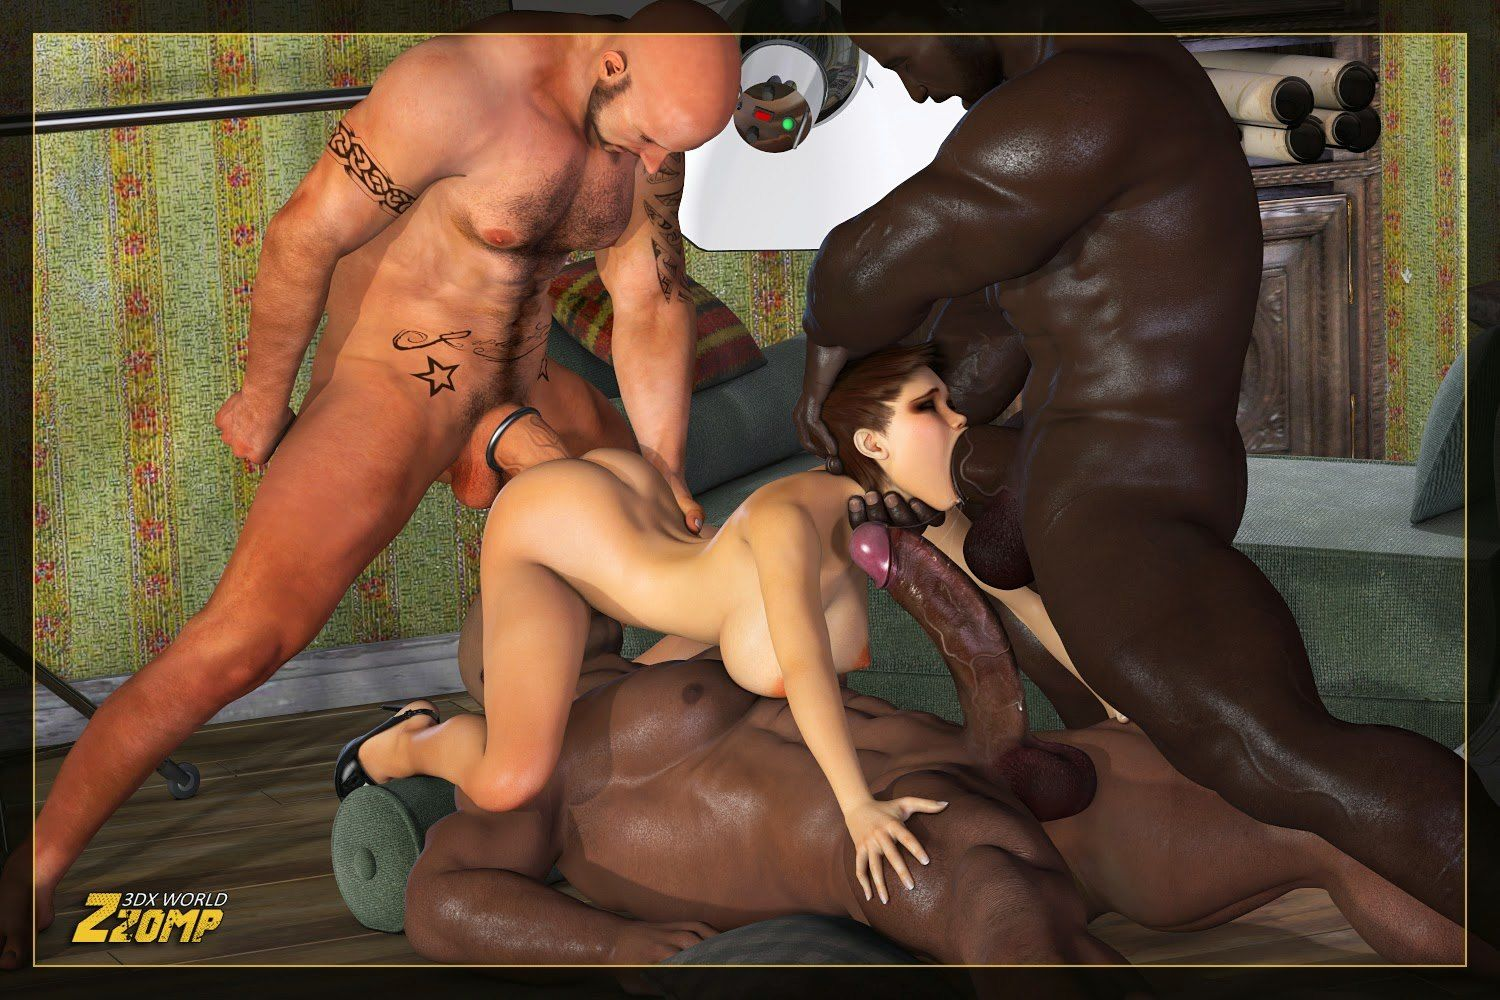 Sex fucks cartoon world downloads xxx pic